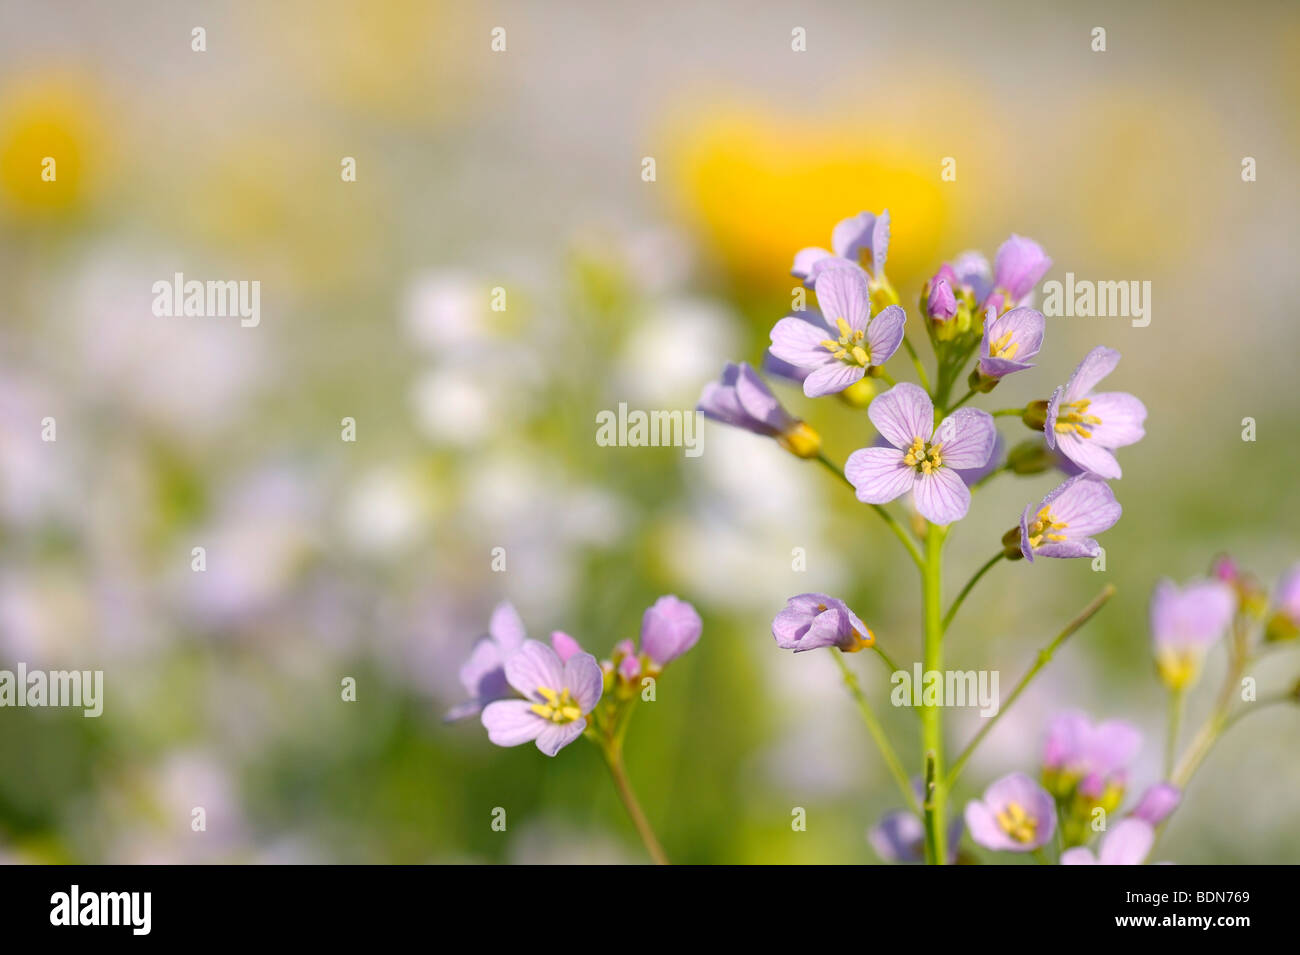 Cuckoo Flower (Card amines pratensis) on a spring meadow Stock Photo